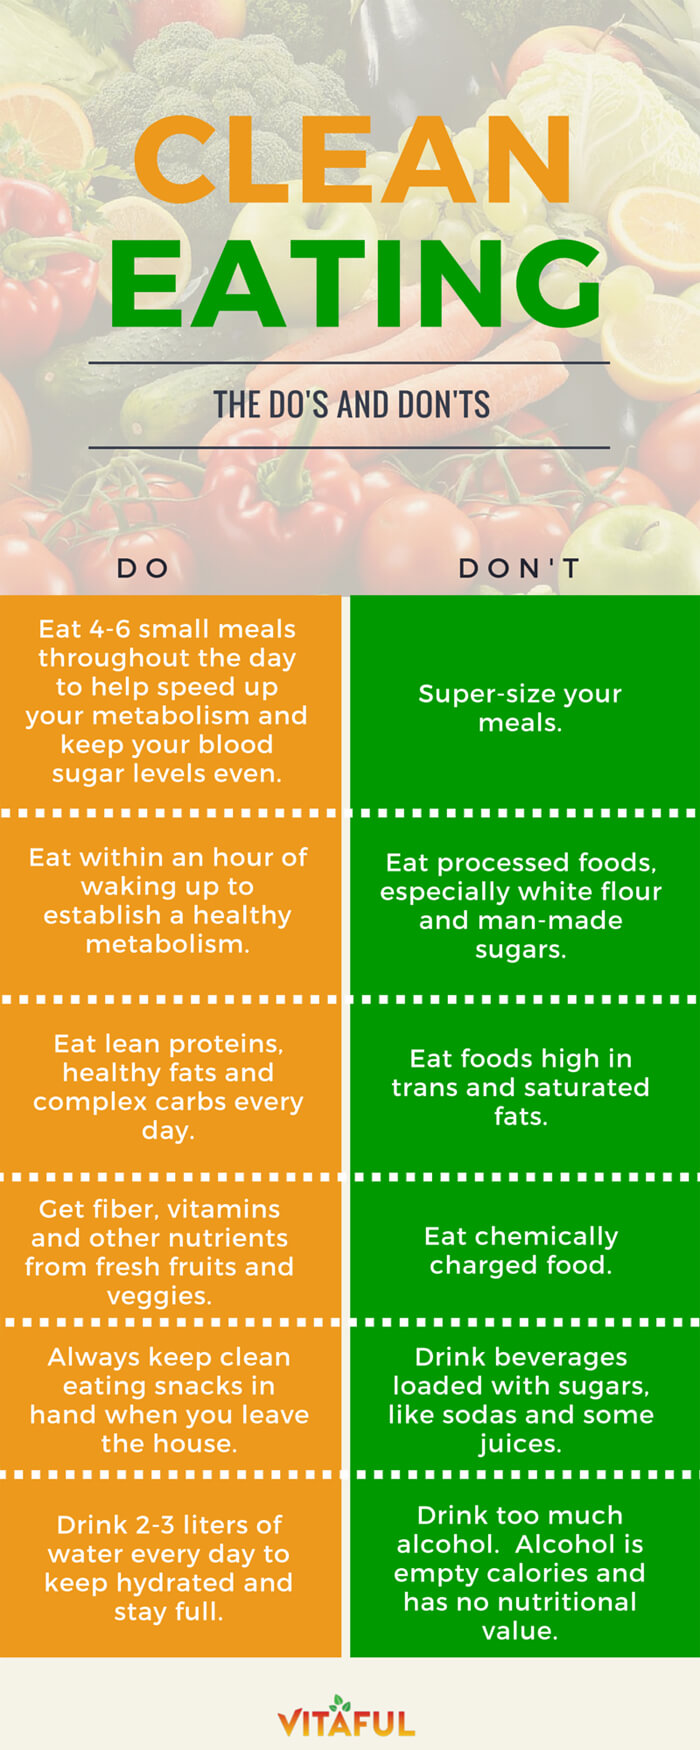 Clean Eating – The Do's and Don'ts